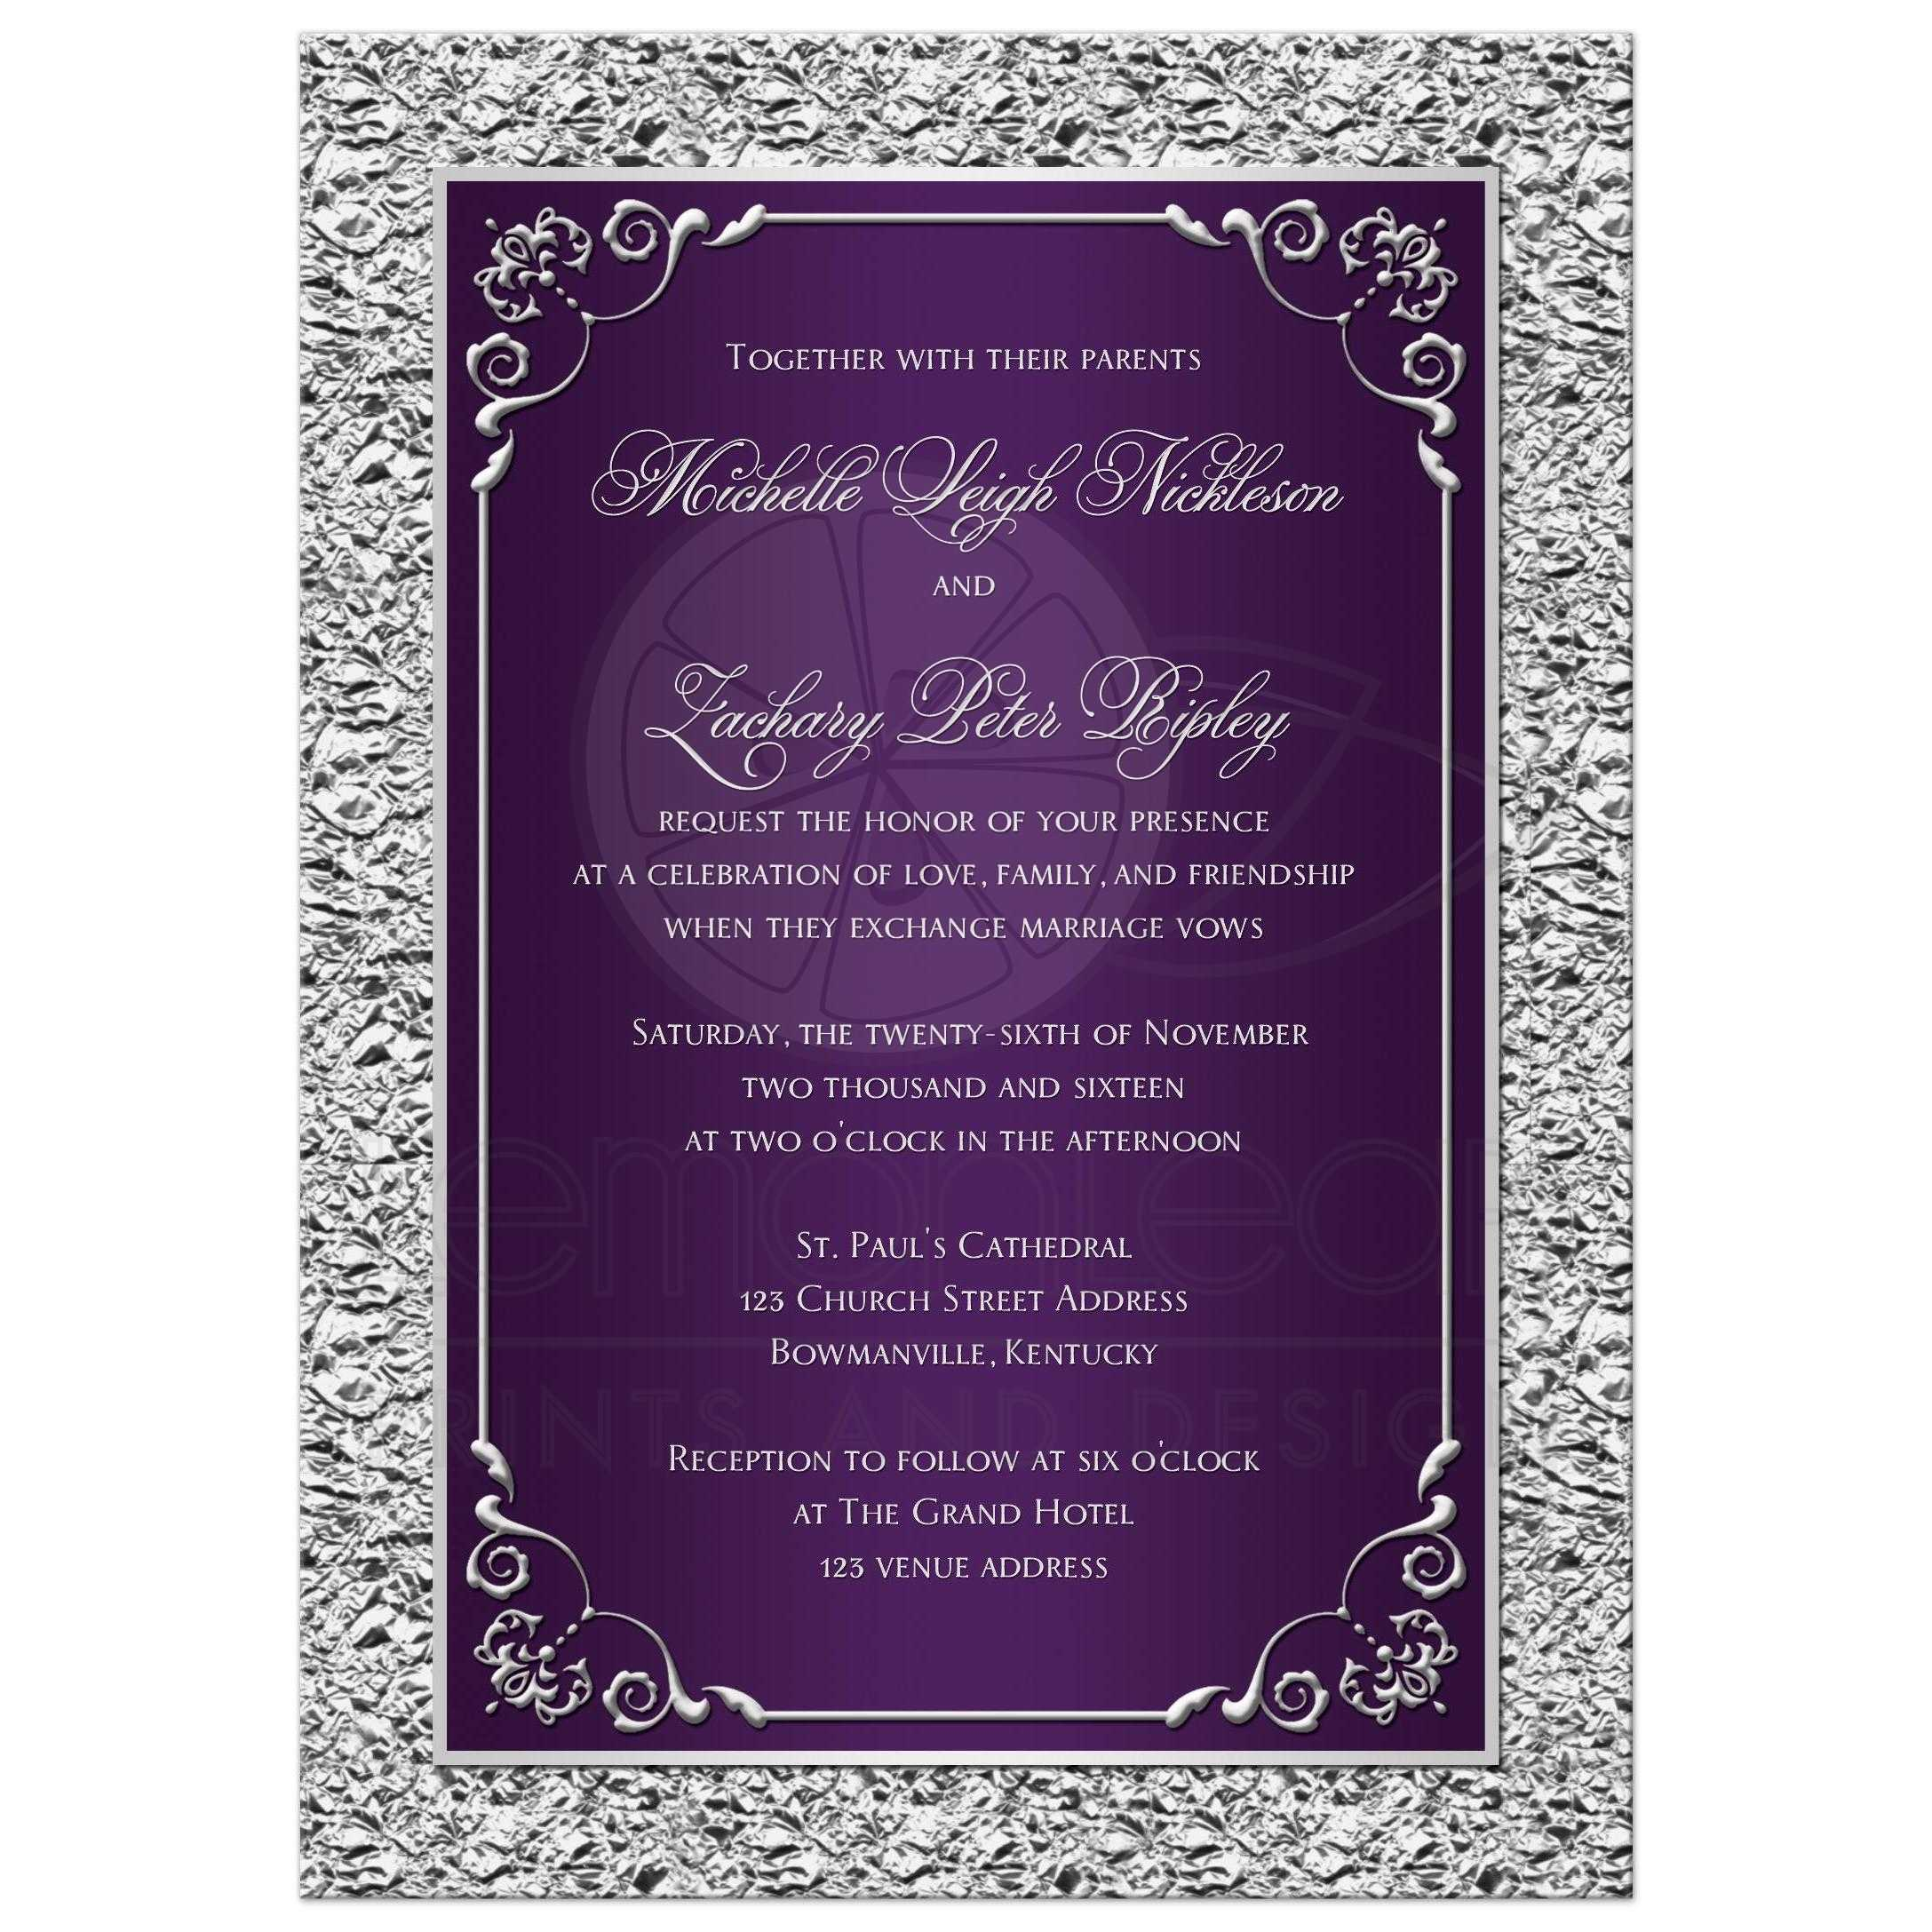 Printable Wedding Invitations Designs With Red And Silver: Purple, Silver Scrolls